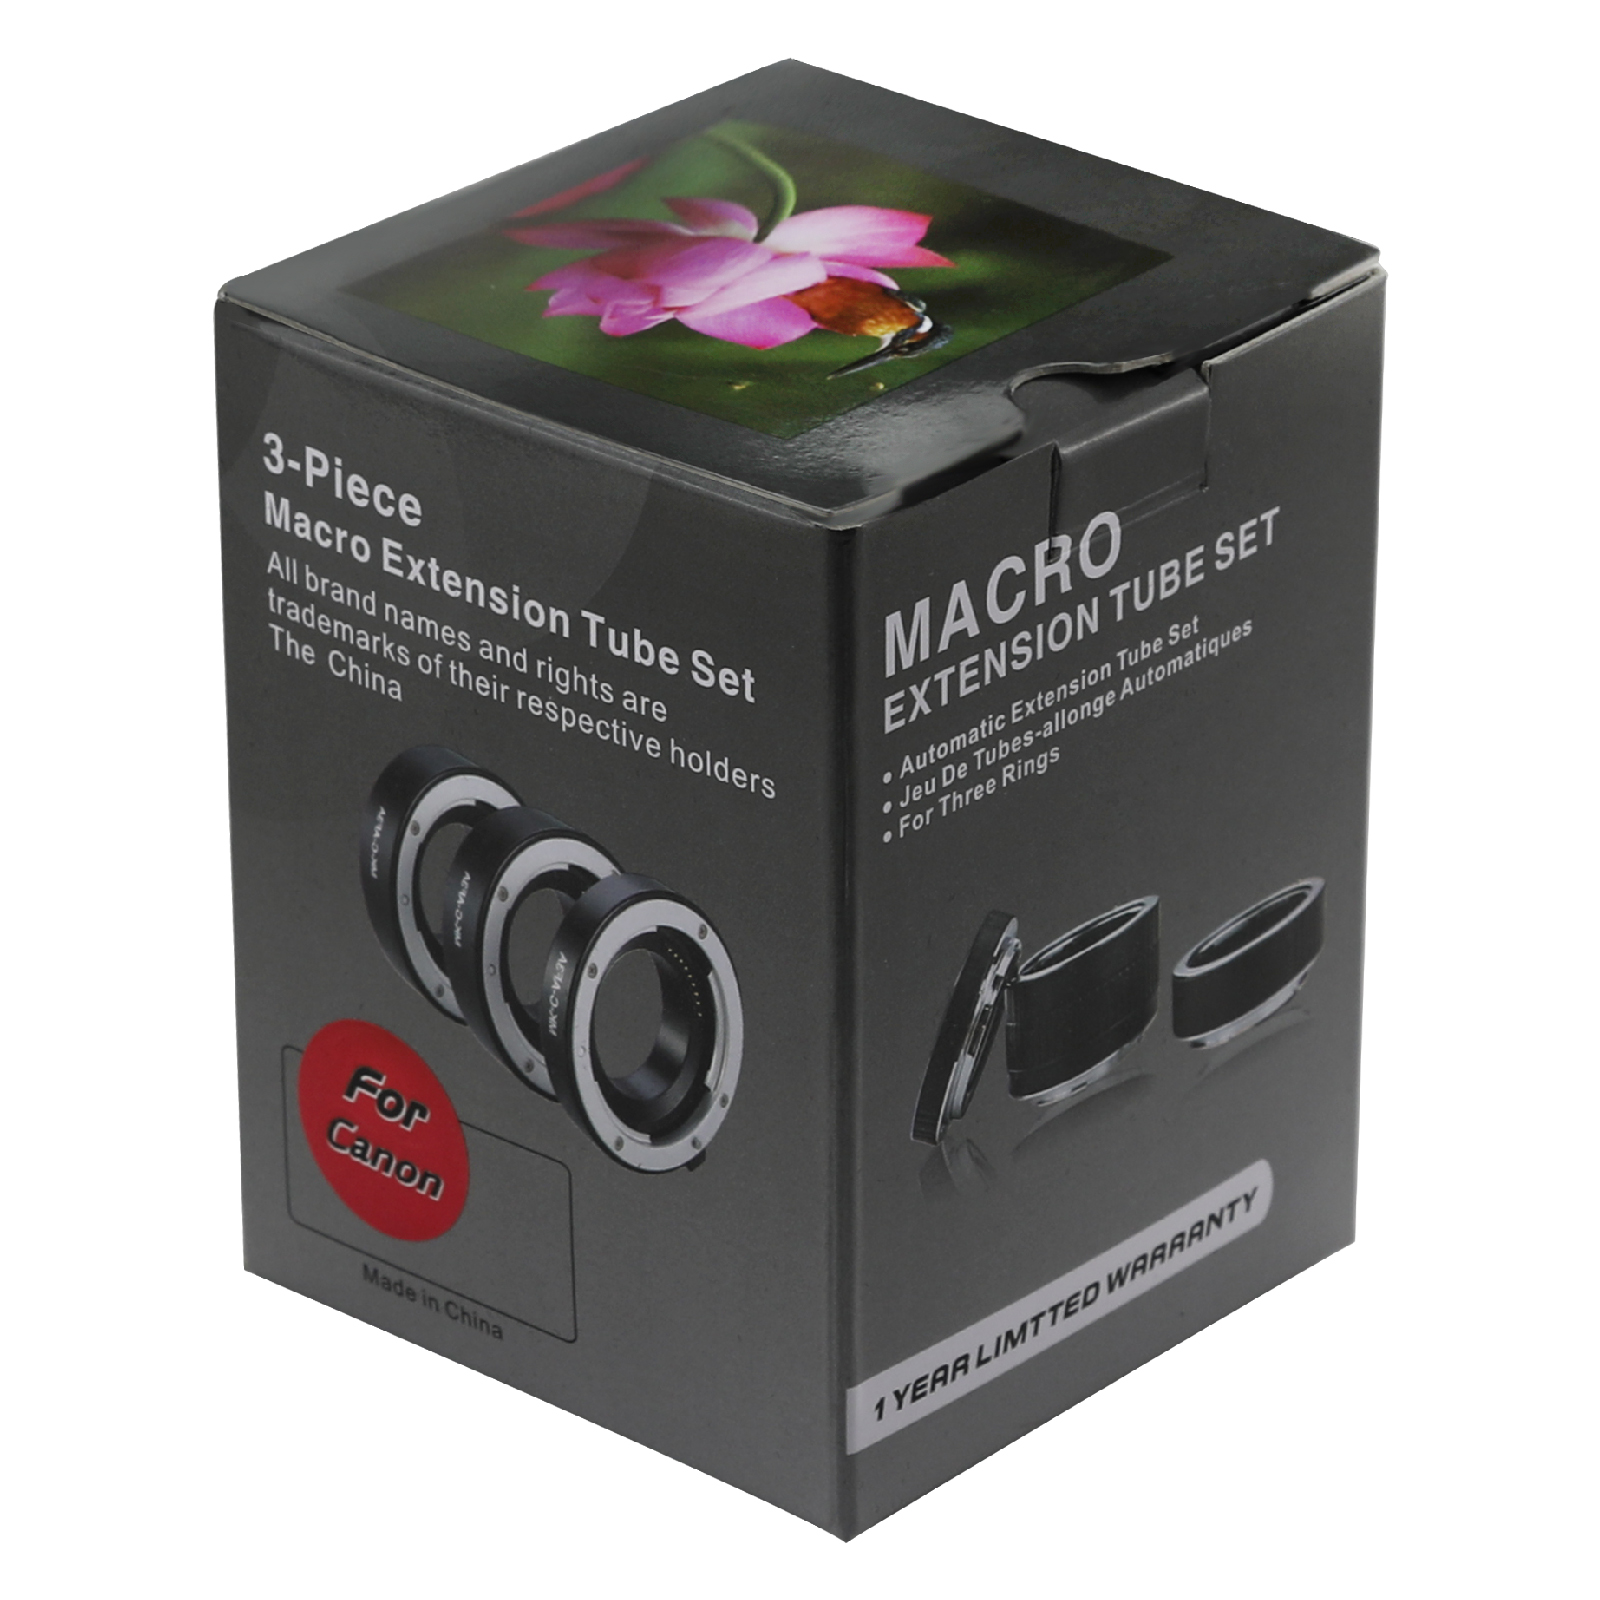 Macro Extension Tube For Camera Dslr